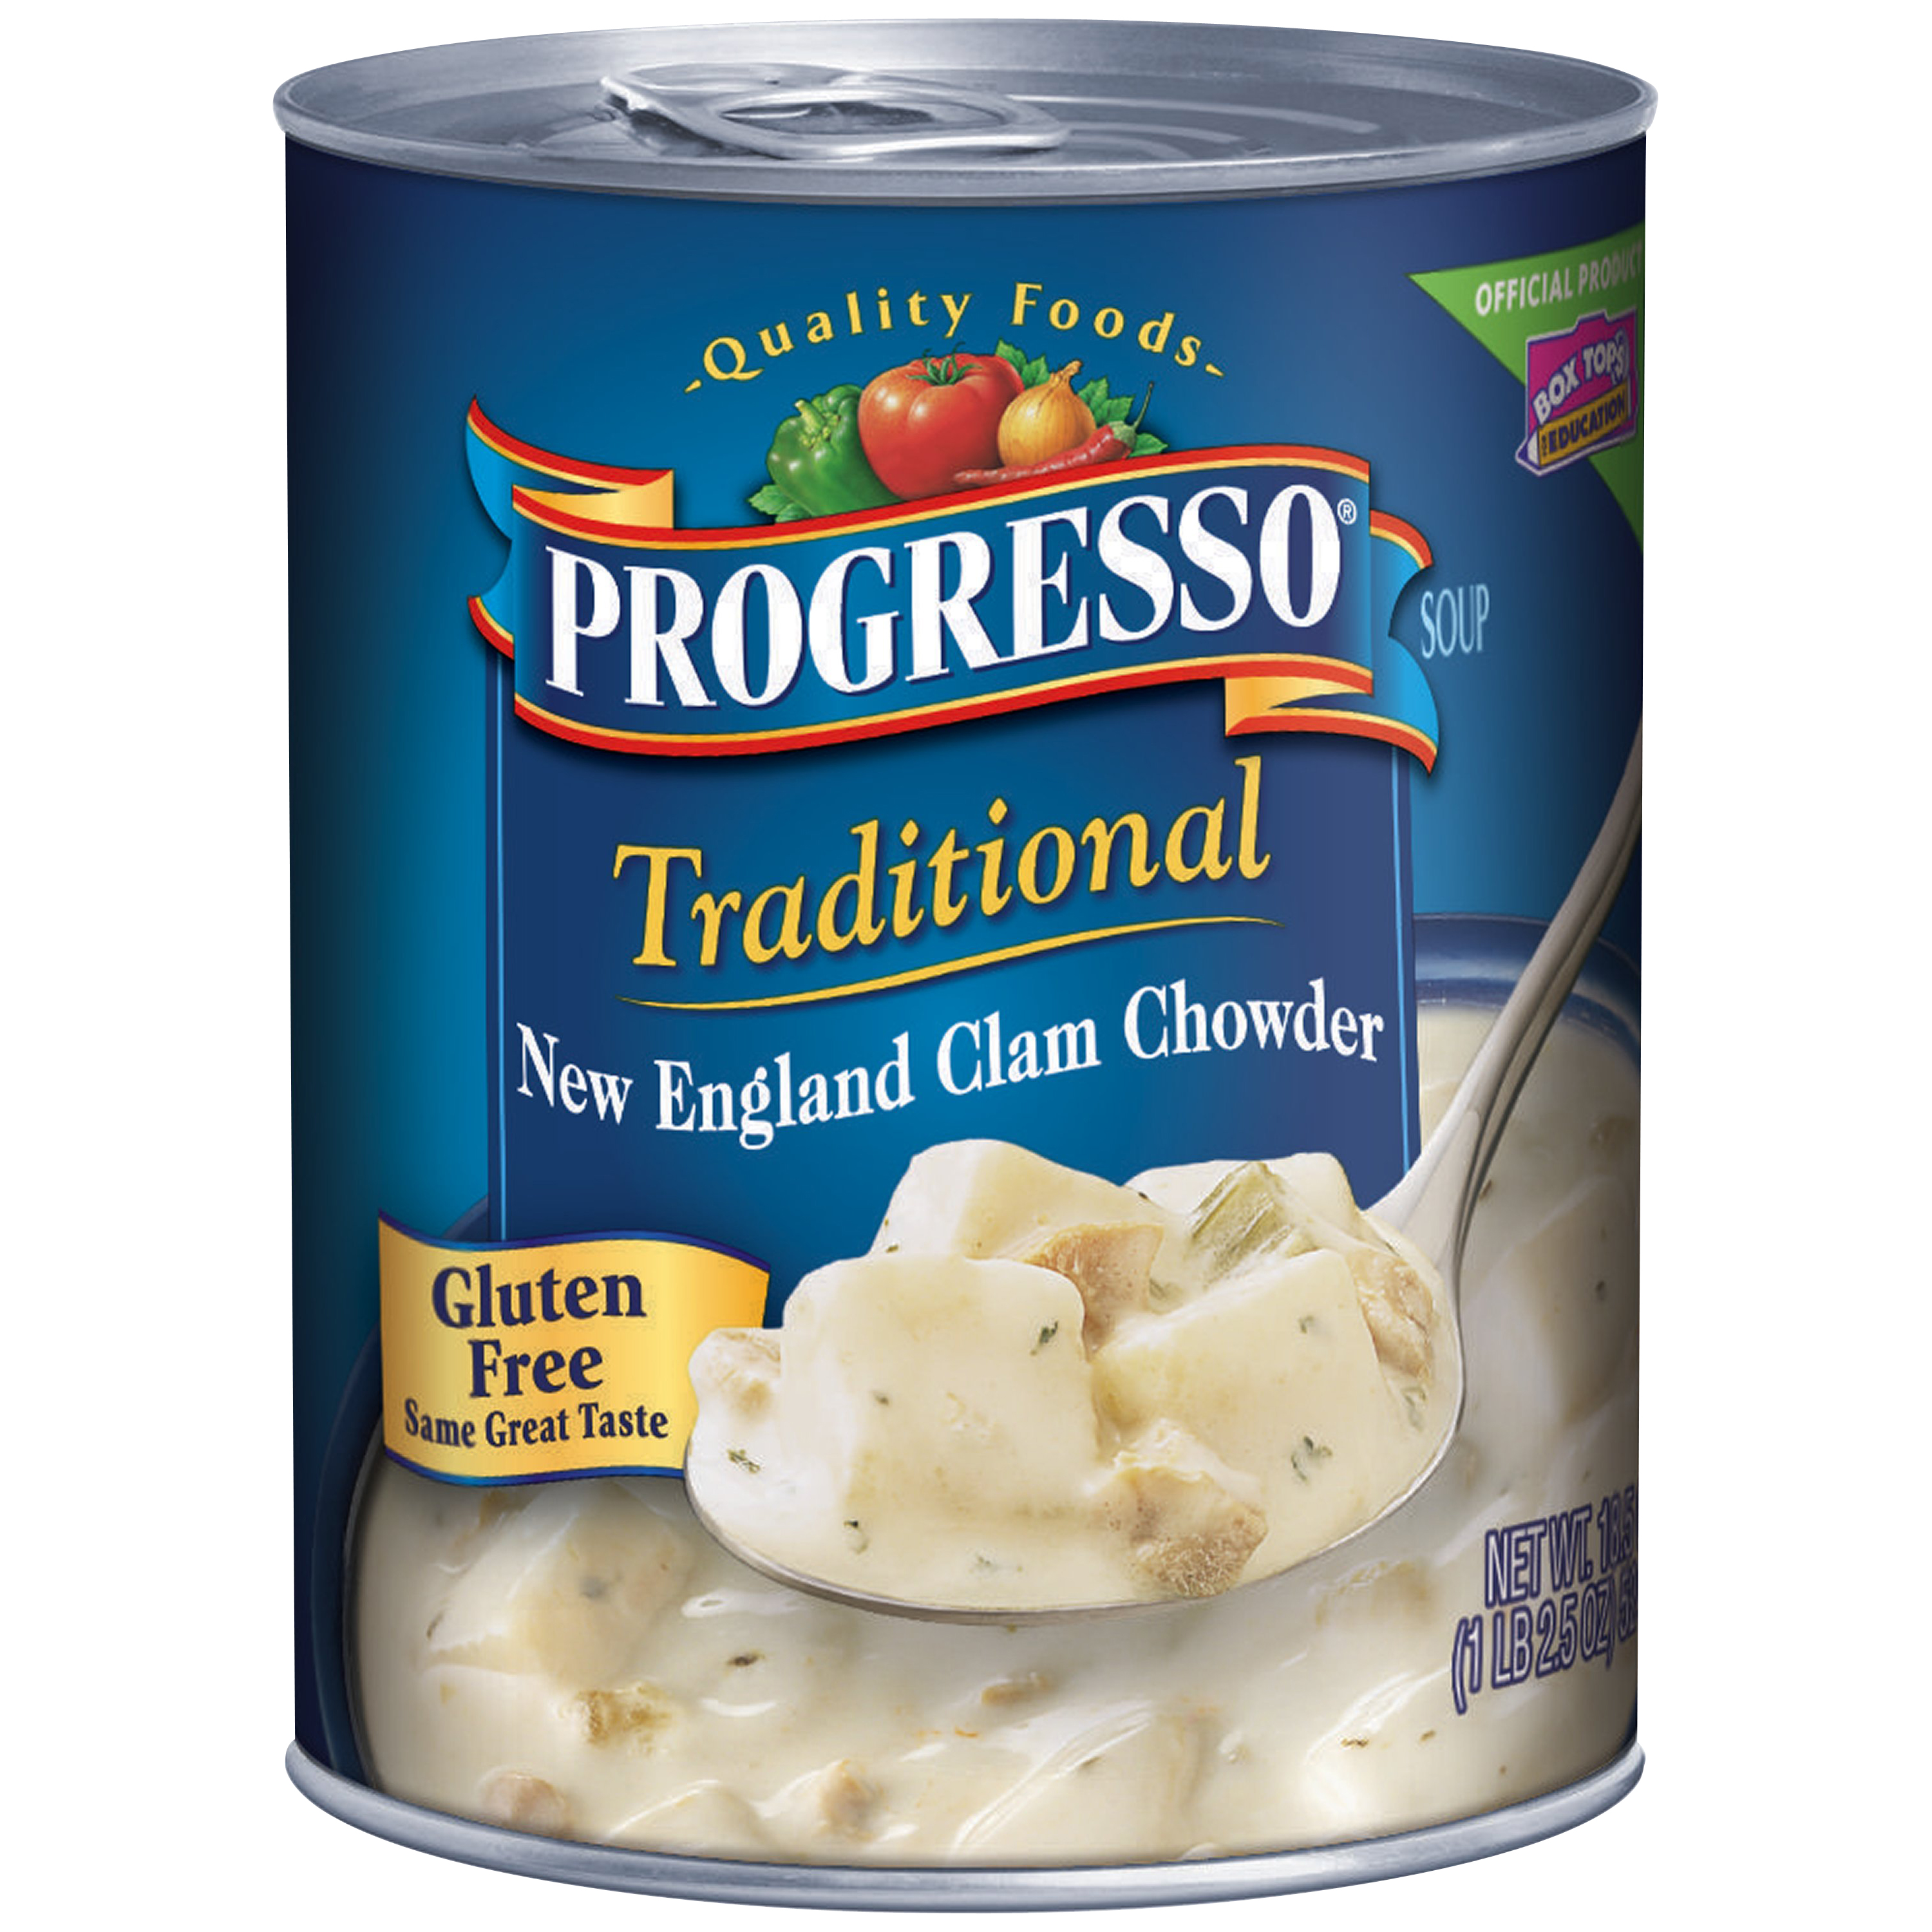 Progresso® Traditional New England Clam Chowder Soup 18.5 oz. Can